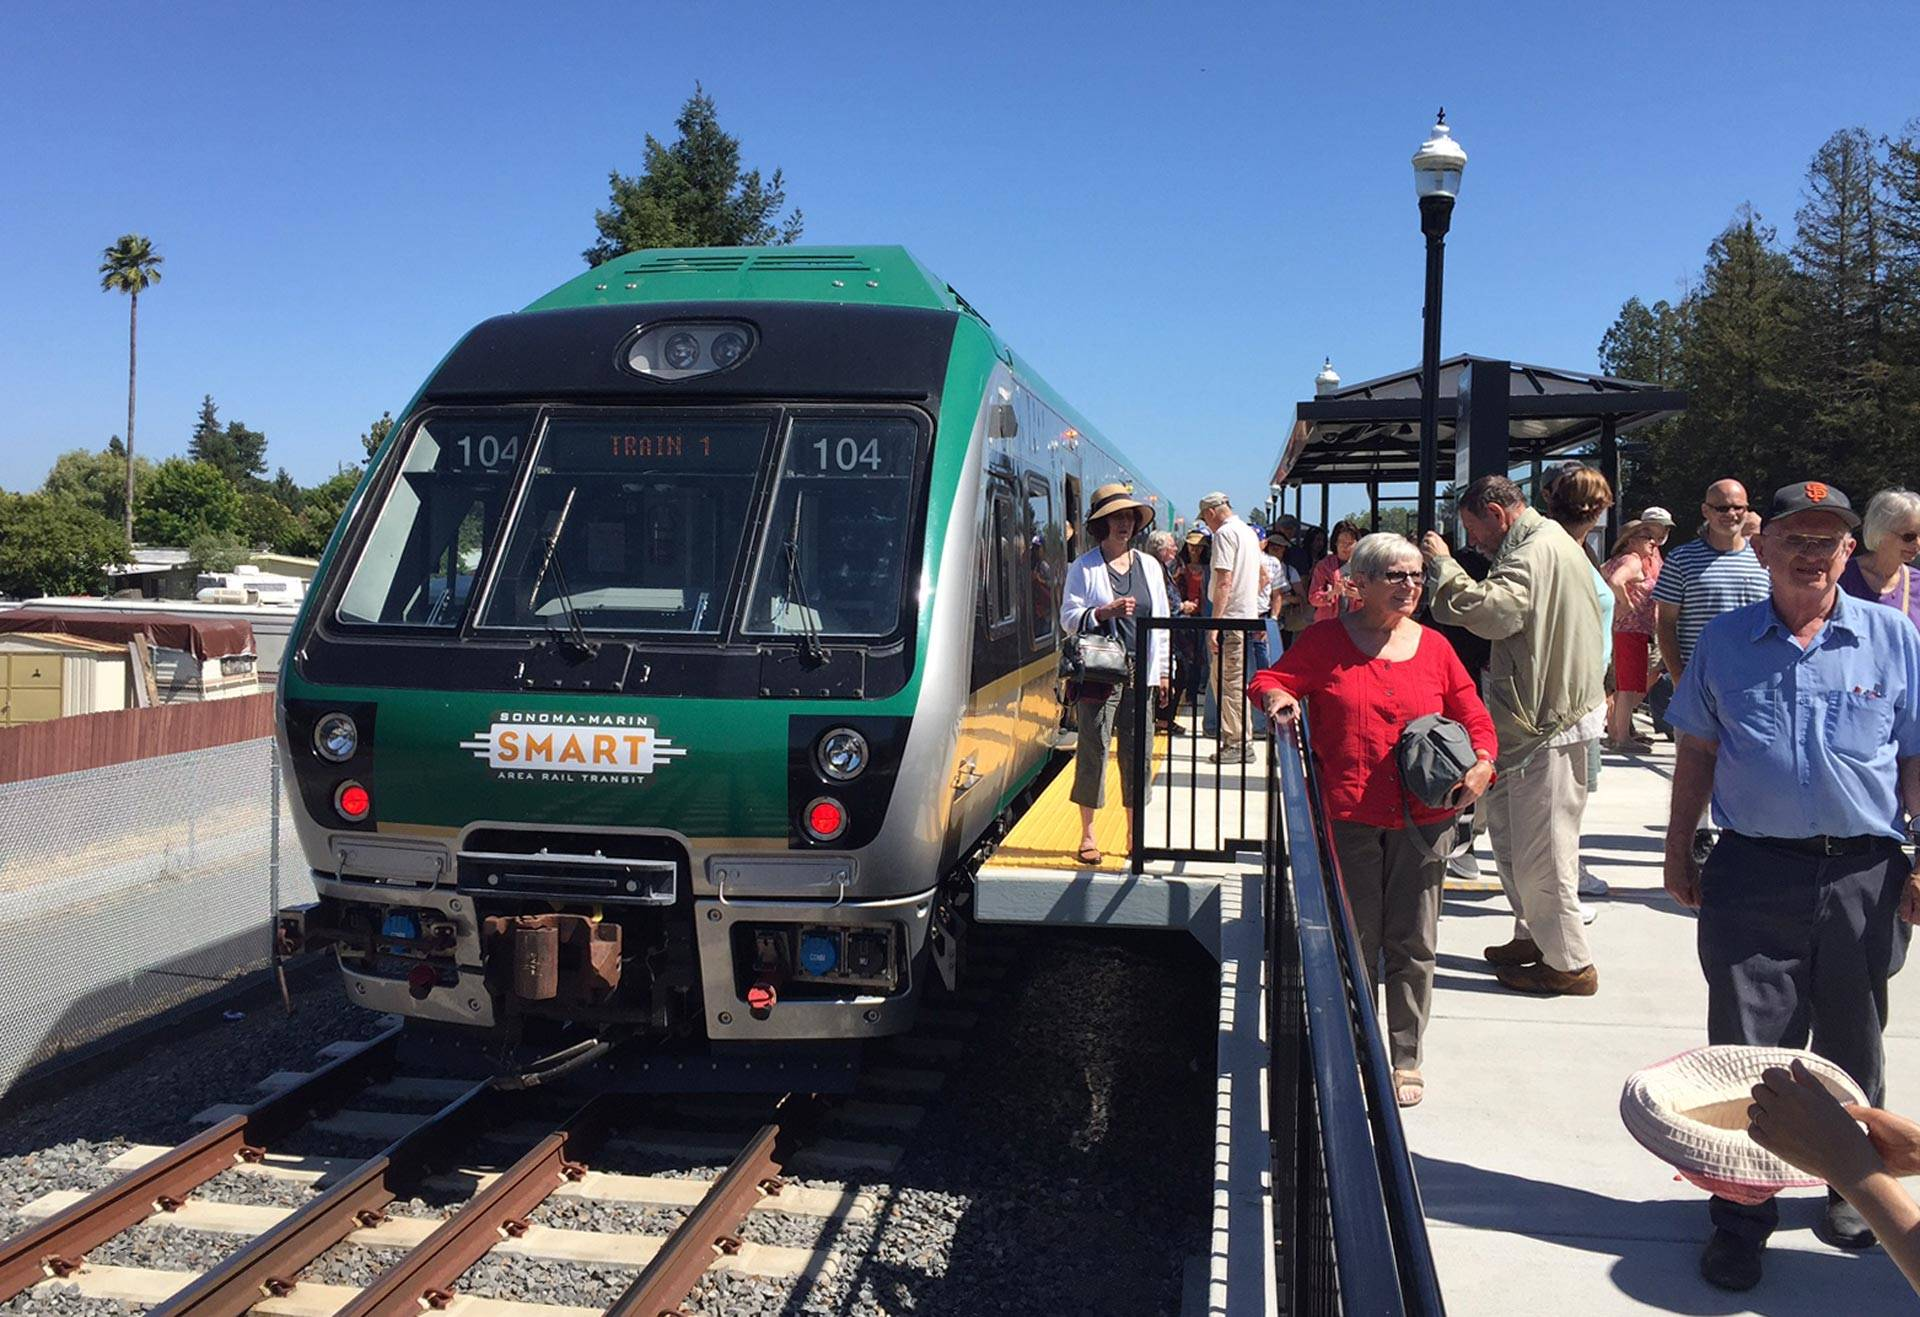 A SMART train awaits departure at the Rohnert Park station for a preview ride on June 29, 2017. Gabe Meline/KQED